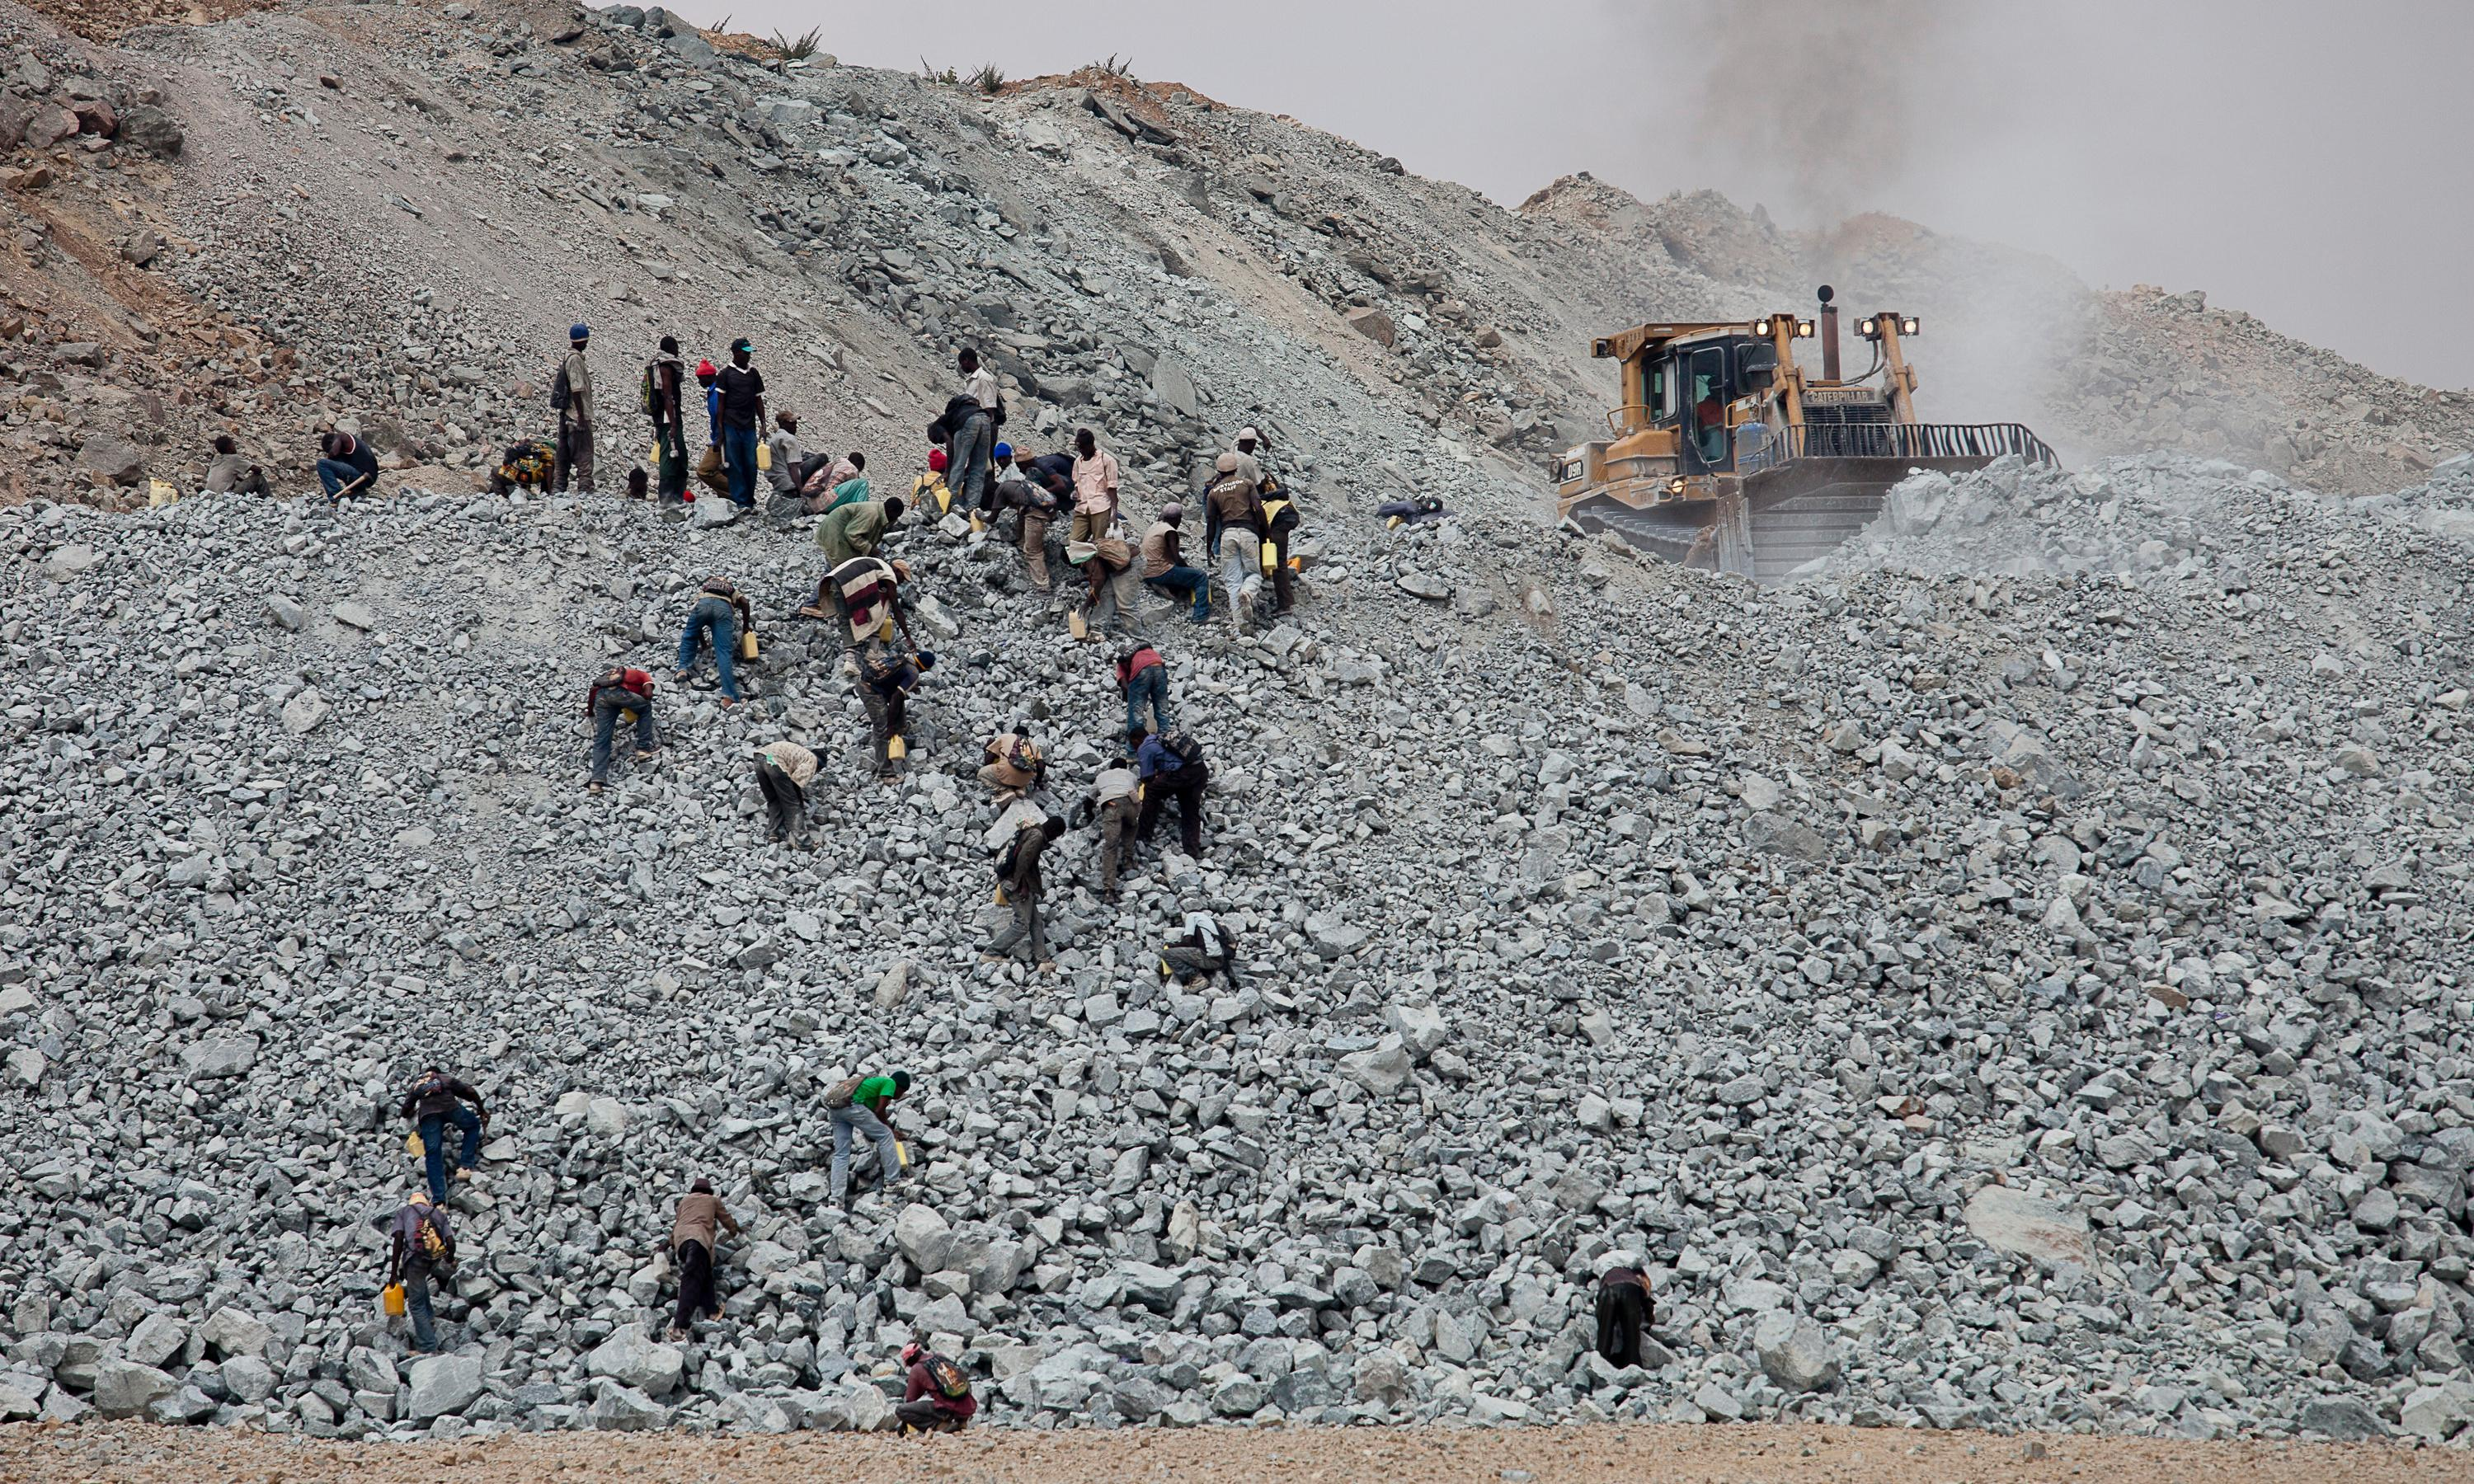 Murder, rape and claims of contamination at a Tanzanian goldmine